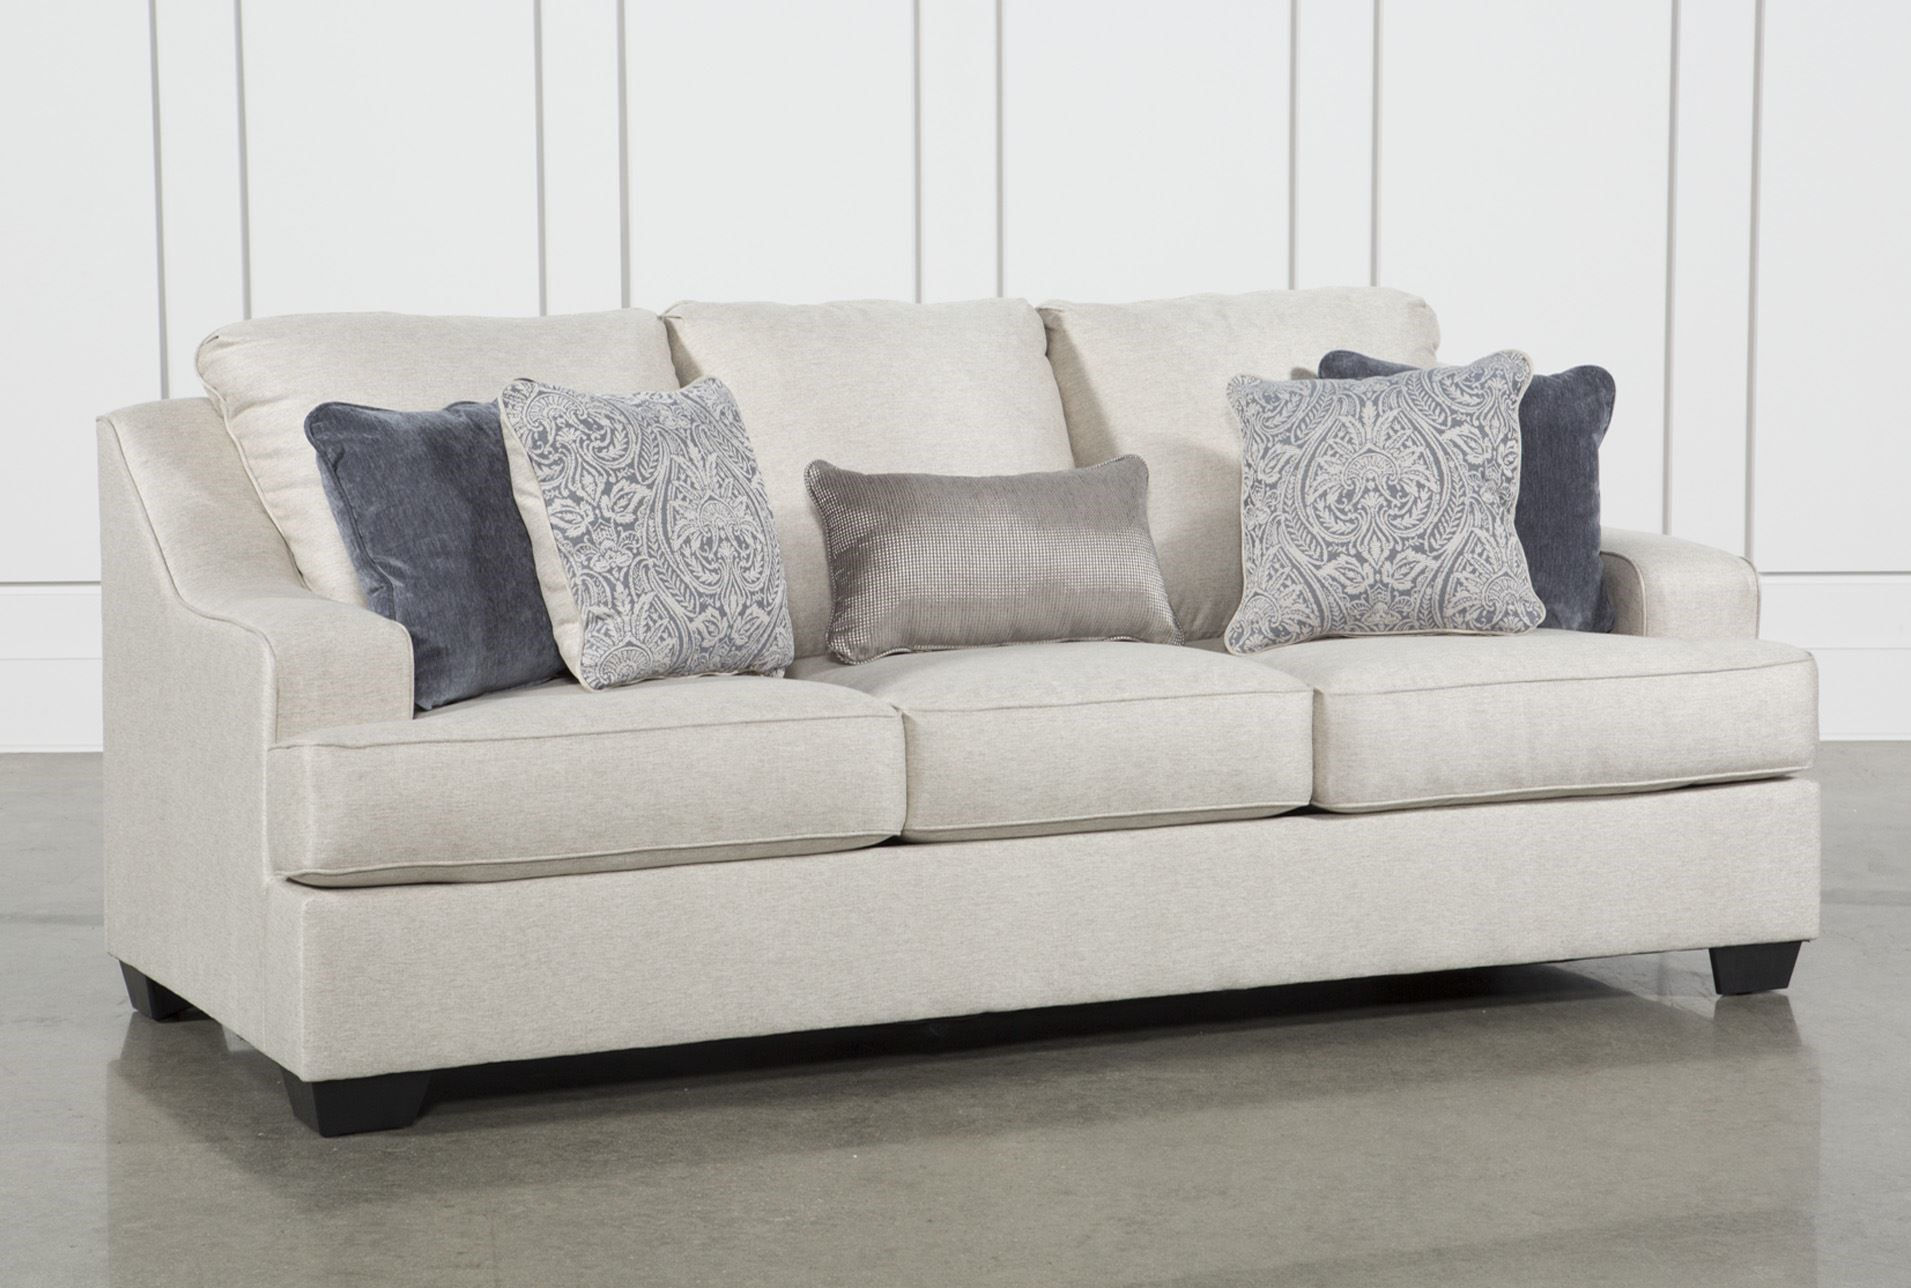 Brumbeck Queen Sofa Sleeper Qty 1 Has Been Successfully Added To Your Cart